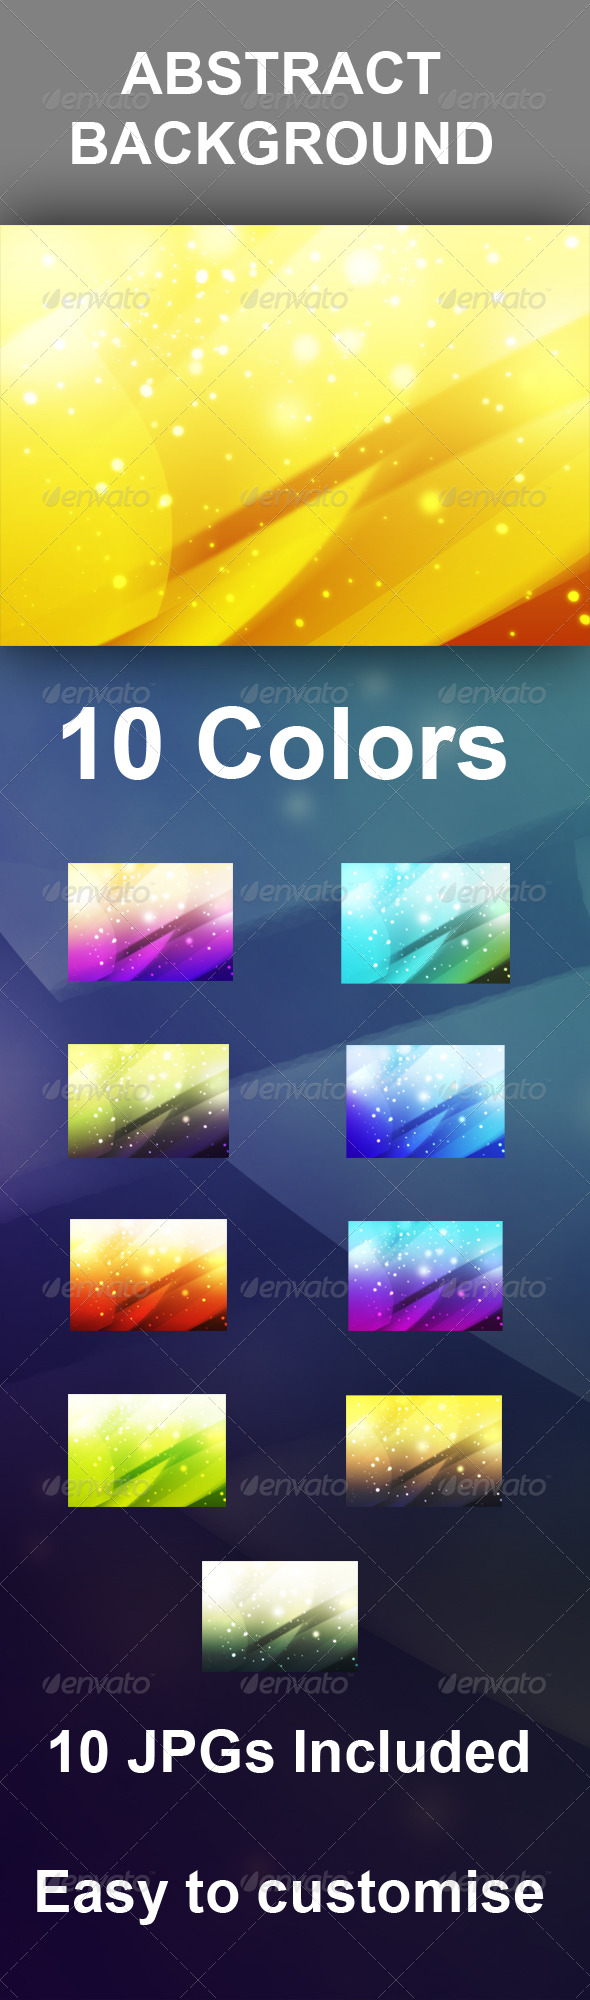 Abstract Background Kit - Backgrounds Graphics